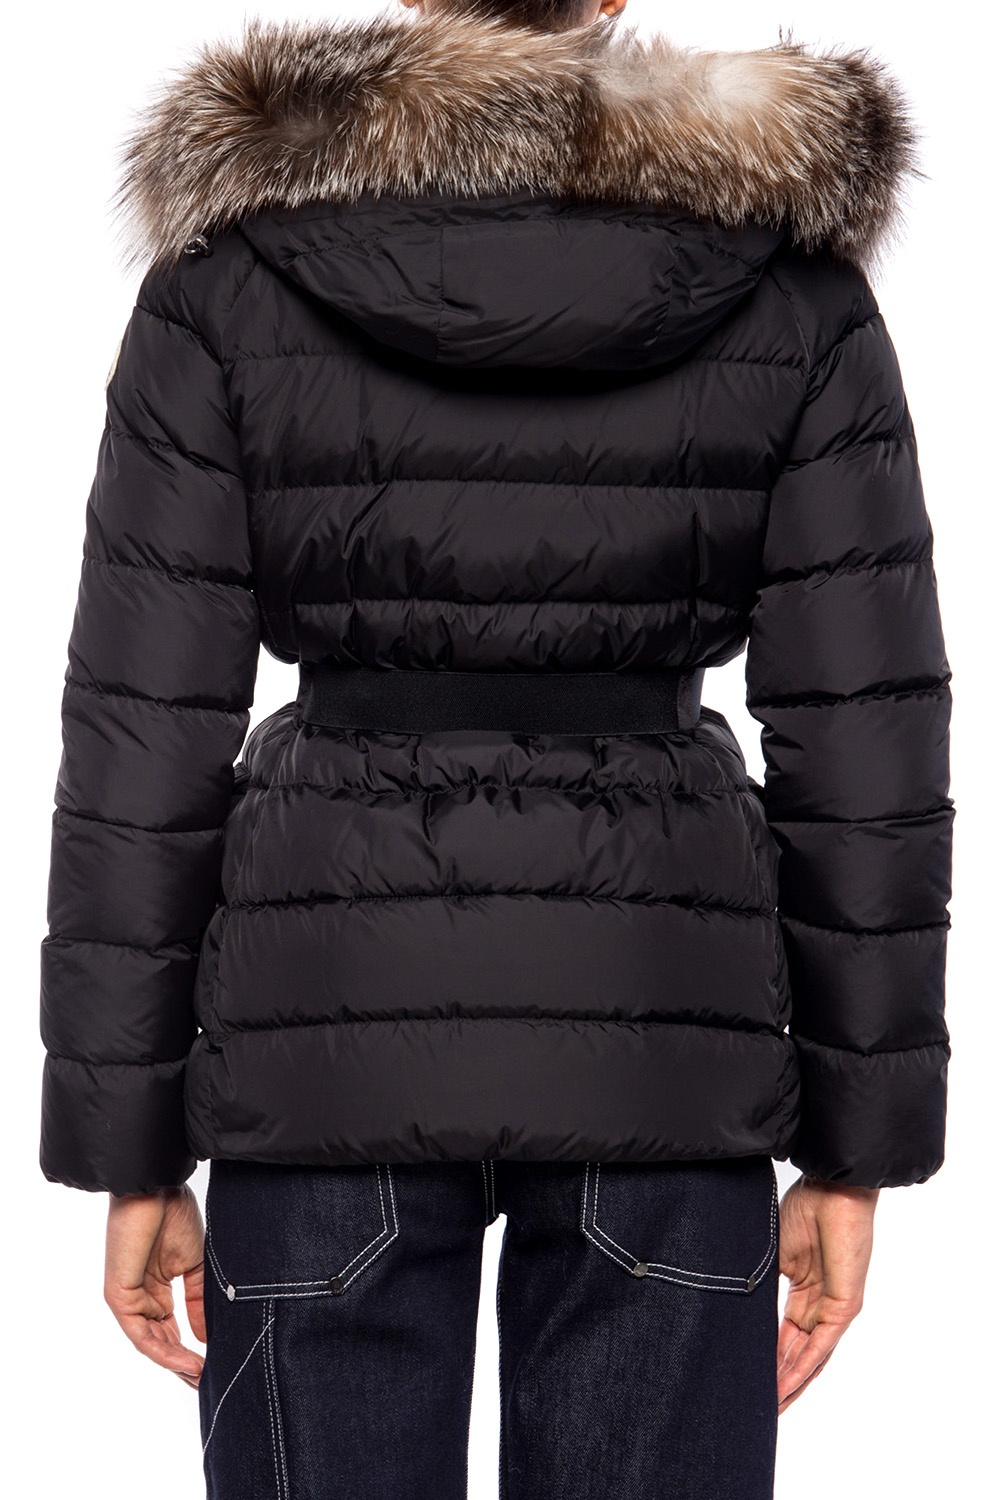 'Clion' quilted down jacket Moncler - Vitkac Italy